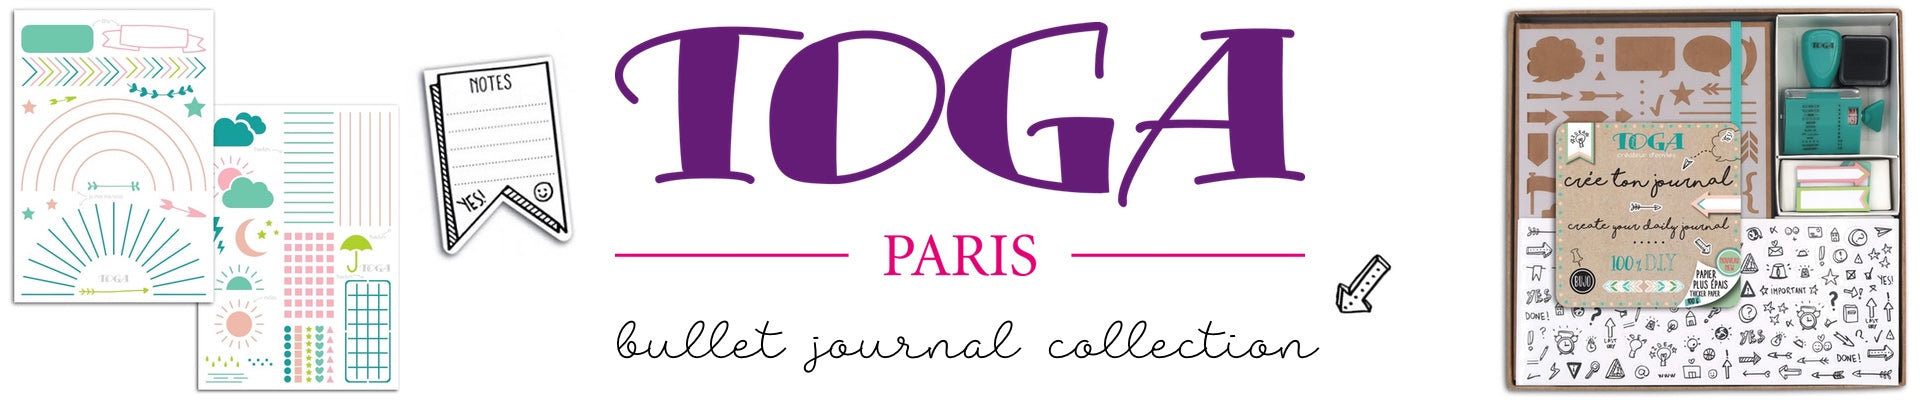 TOGA PARIS BULLET JOURNAL COLLECTION, WASHIGANG AUSTRALIA